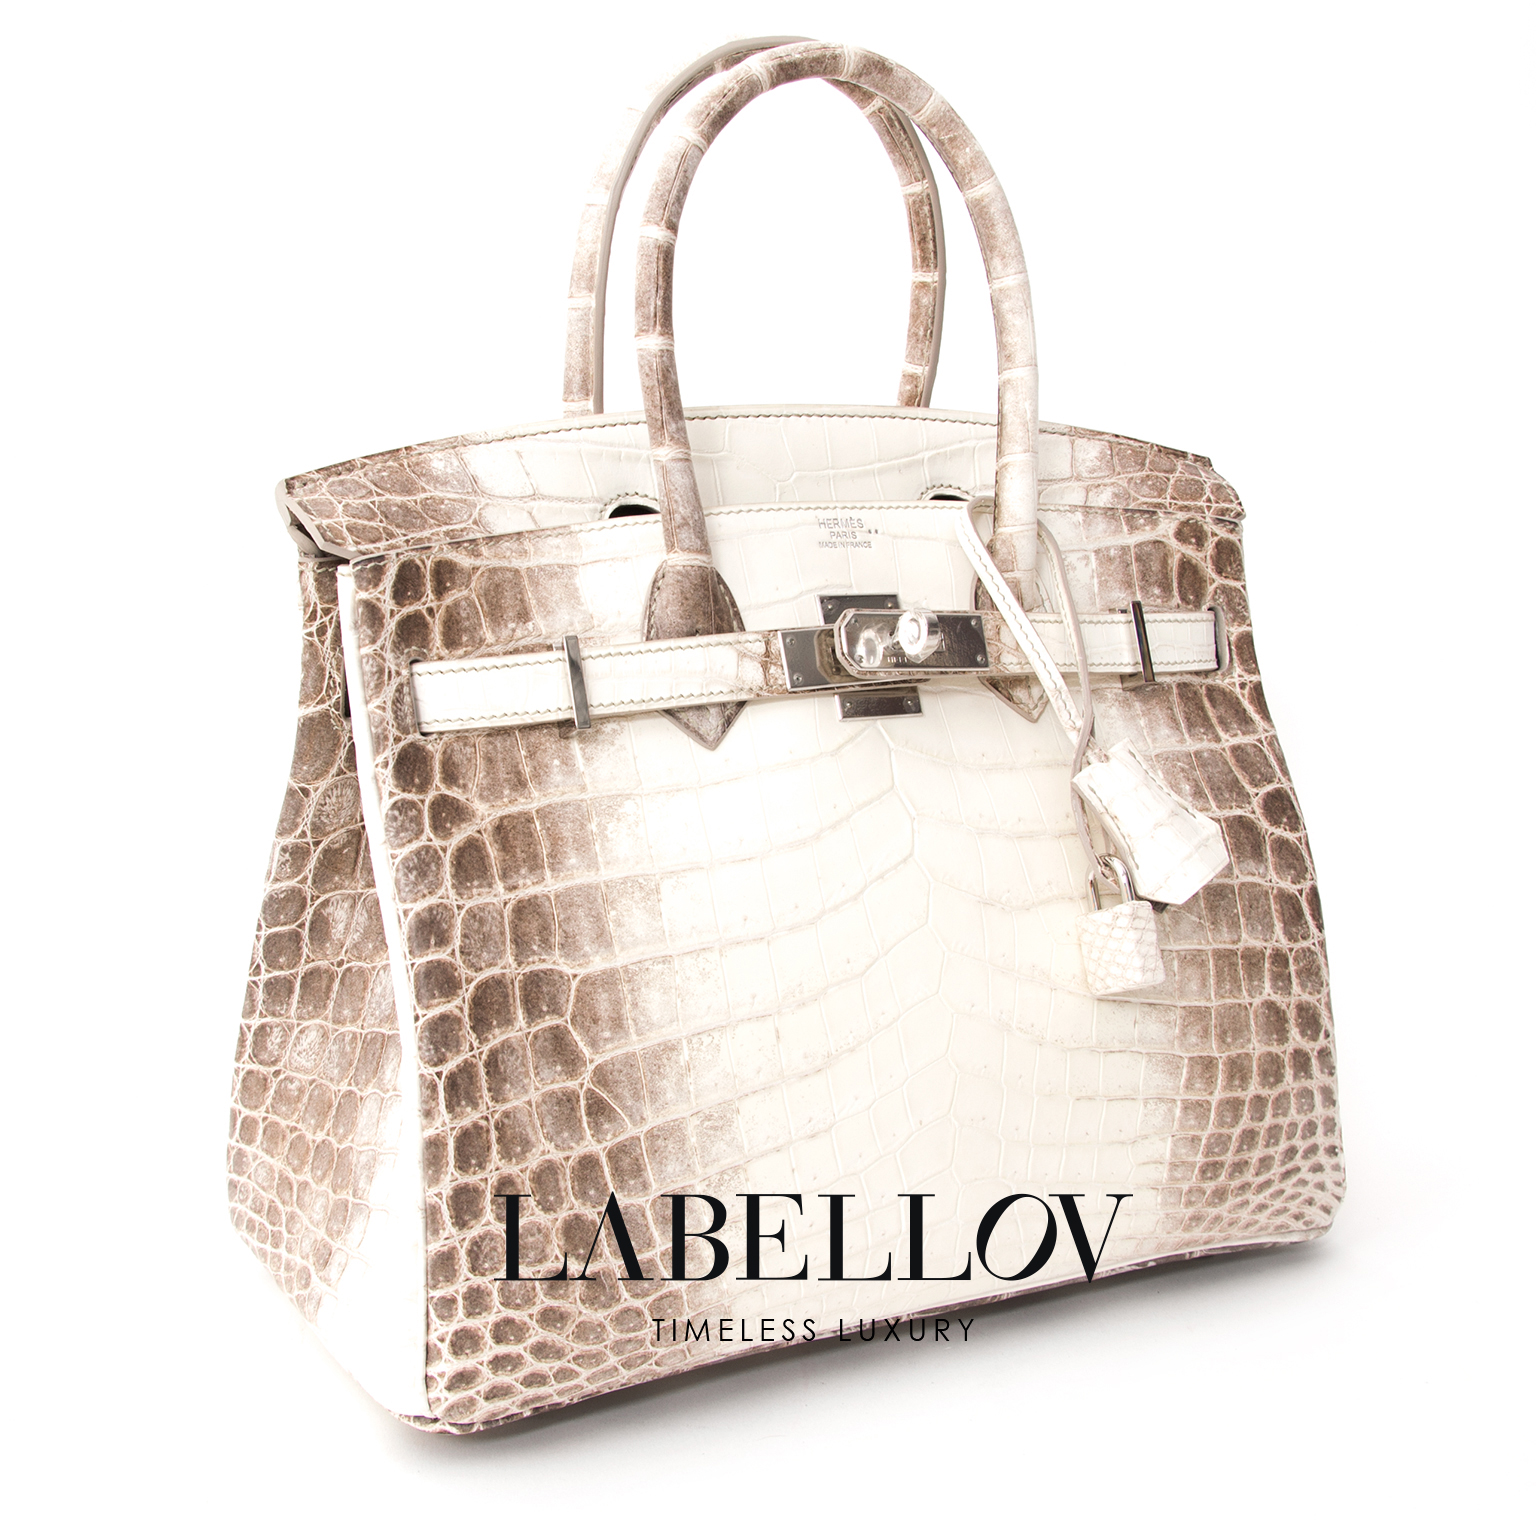 Made from the rarest albino Crocodile Niloticus hide with dyed sides in Himalayan brown.  This exquisite Hermès Birkin bag has an very practical and elegant size - it measures 30cm - and its coloration is is meant to evoke images of the majestic Himalayan